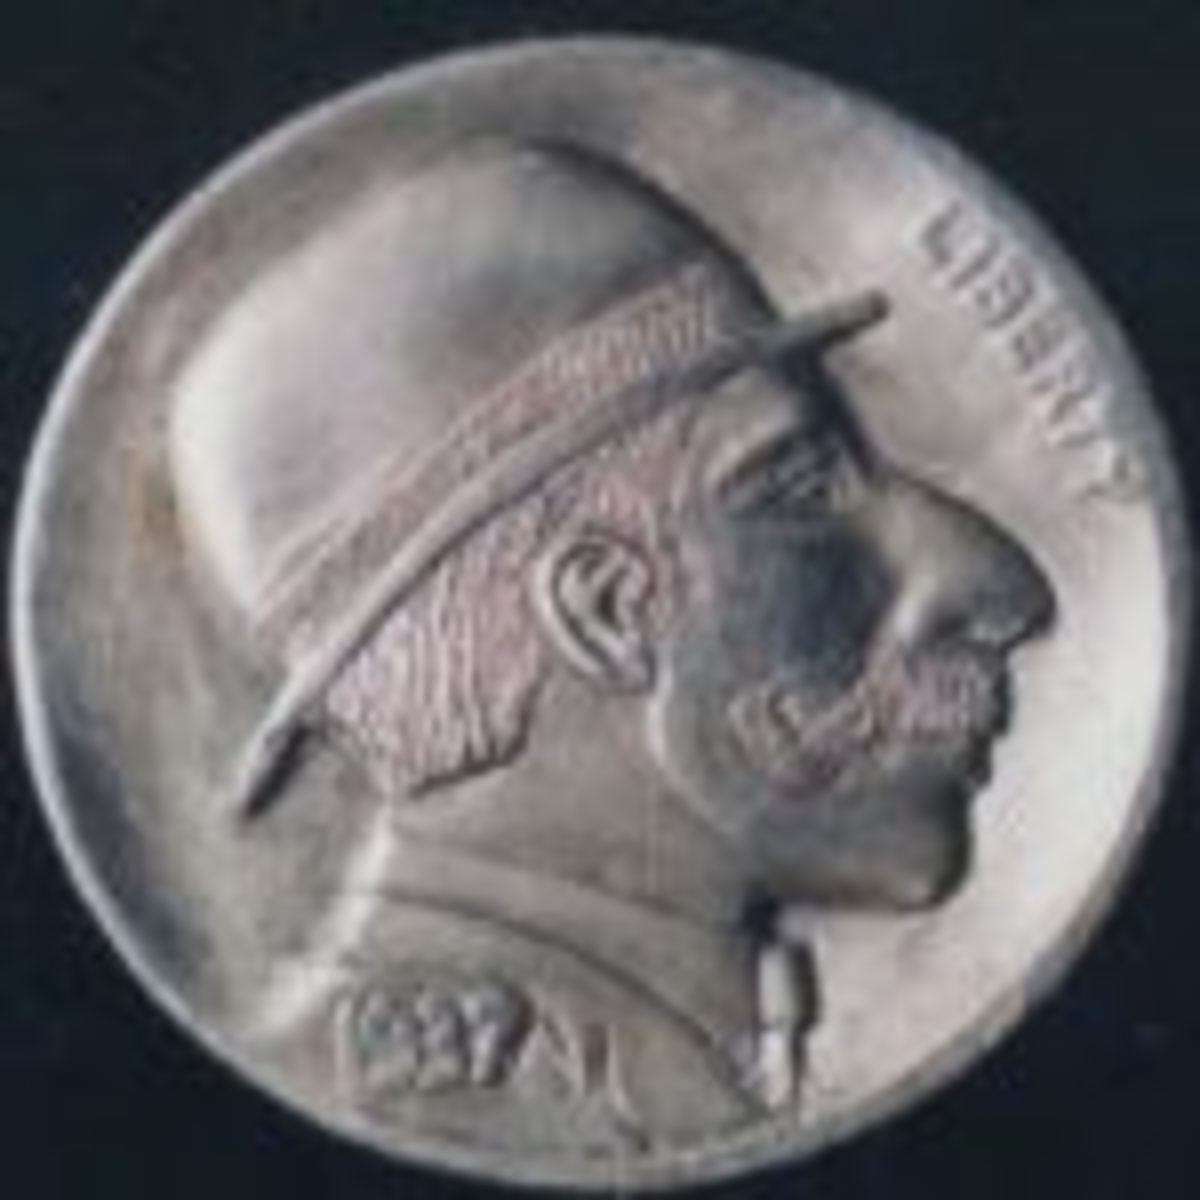 'The Driver' by Joe Paonessa. This pocket change sculpture sold for $330 at a previous Original Hobo Nickel Society auction.